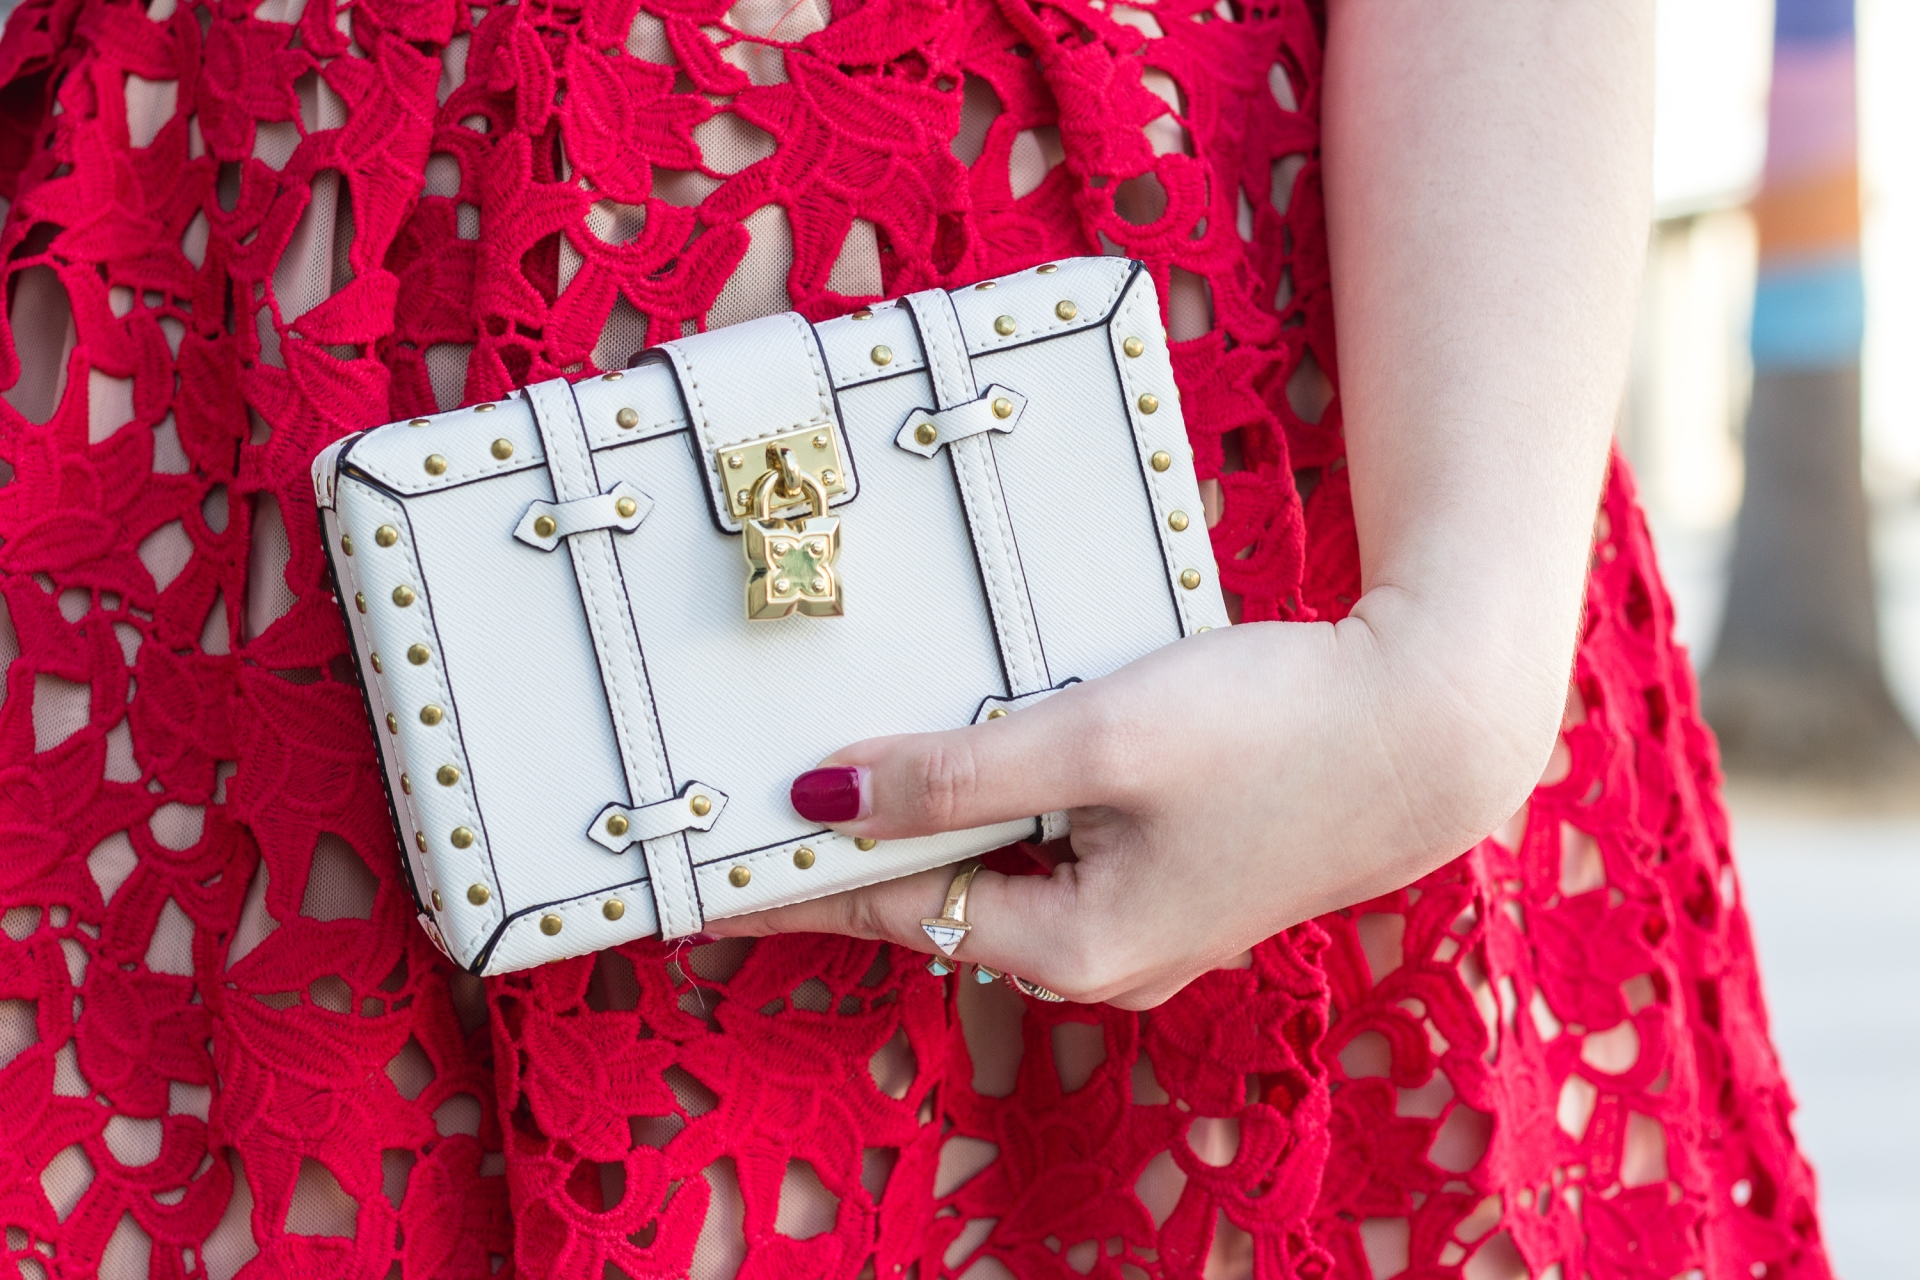 Valentine's Day Look Red Lace Dress Budget-Friendly Self Portrait Azalea Inspired Dress White Studded Box Clutch BCBG Maxazria